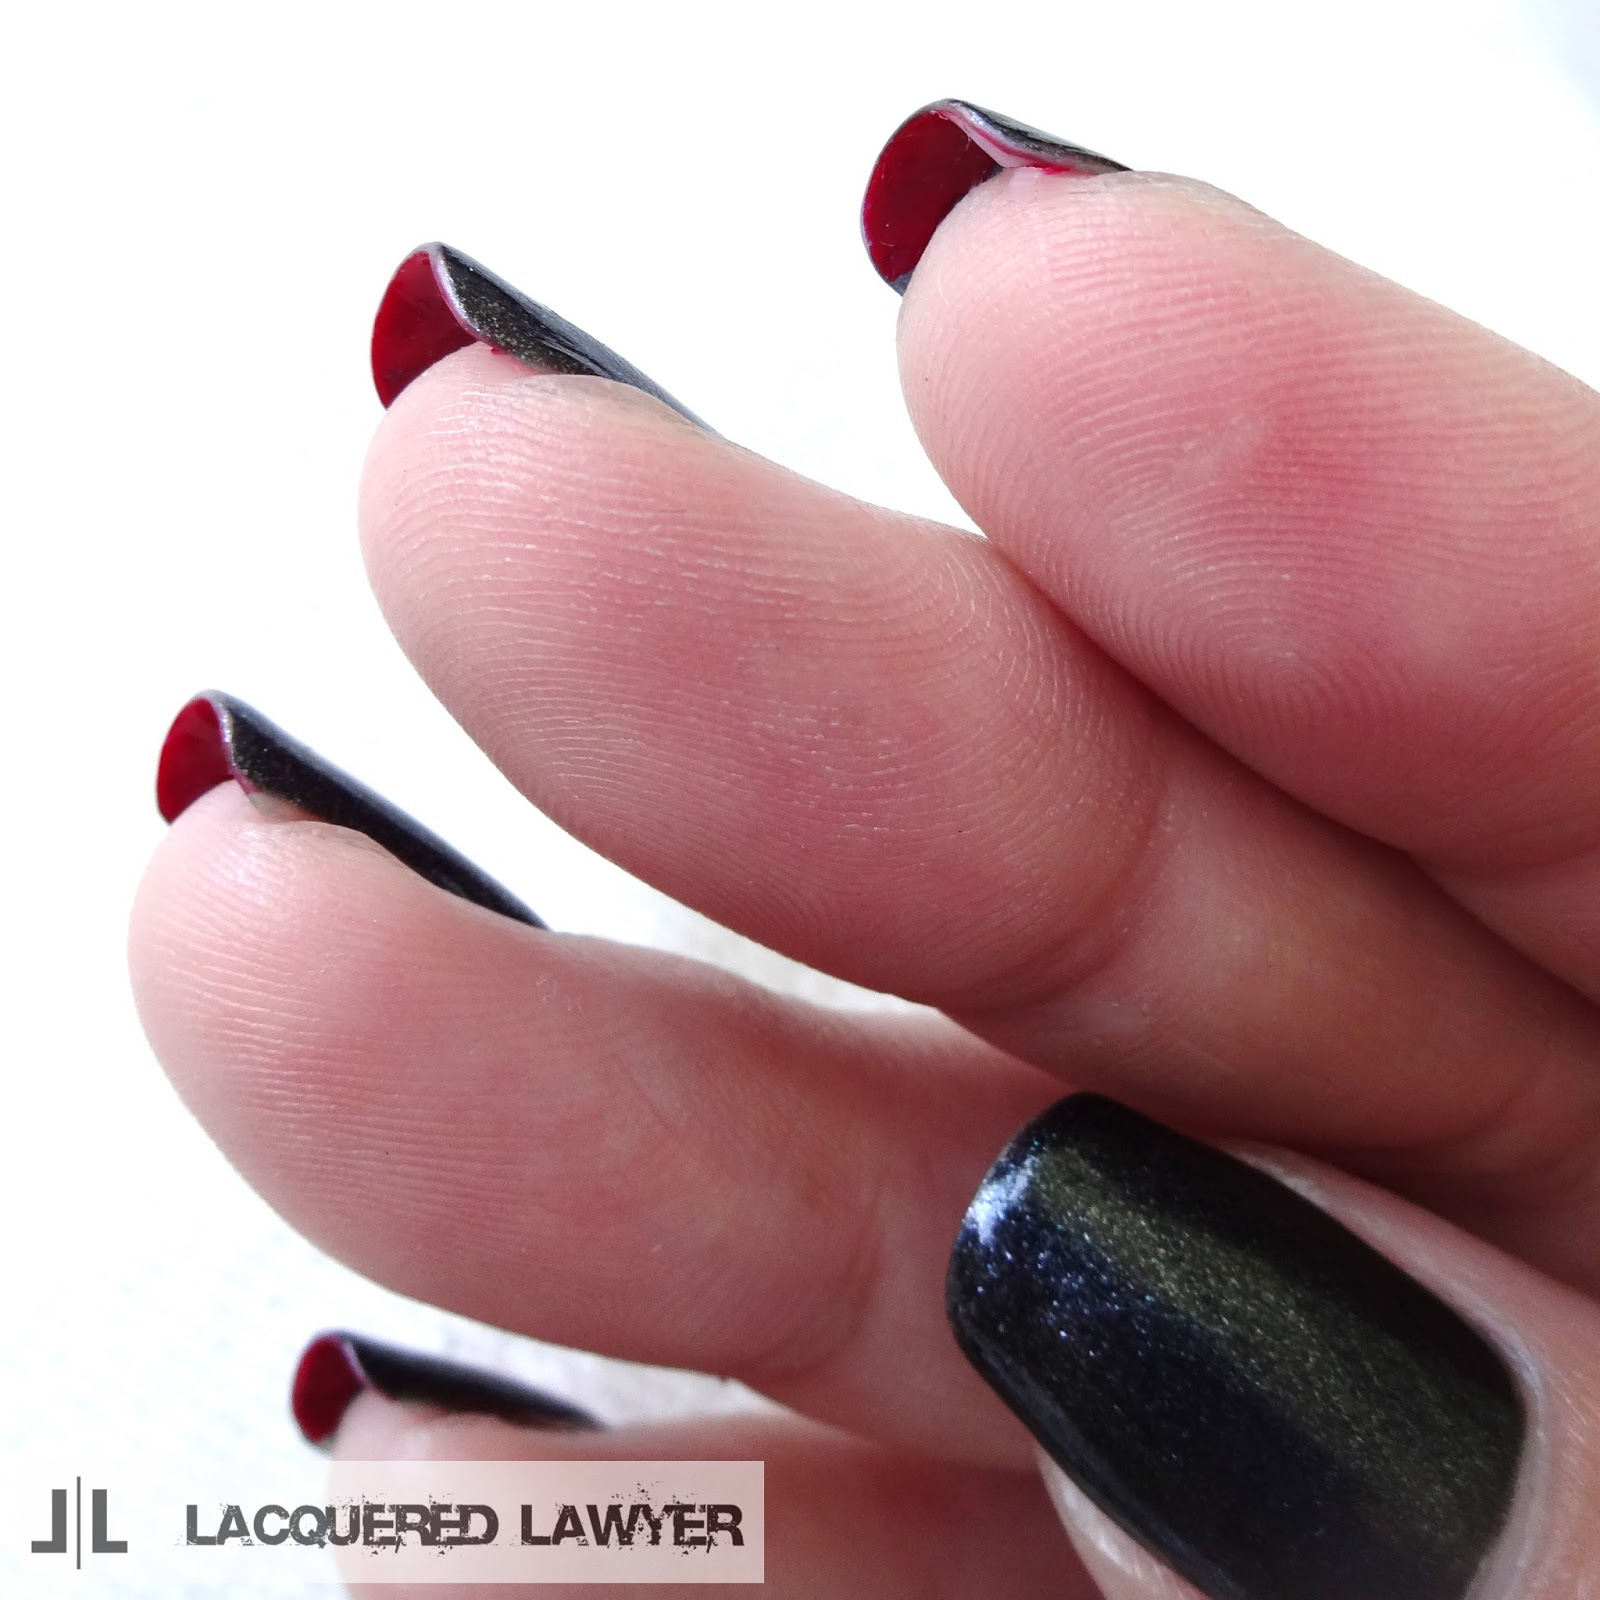 Lacquered Lawyer | Nail Art Blog: Louboutin Nails